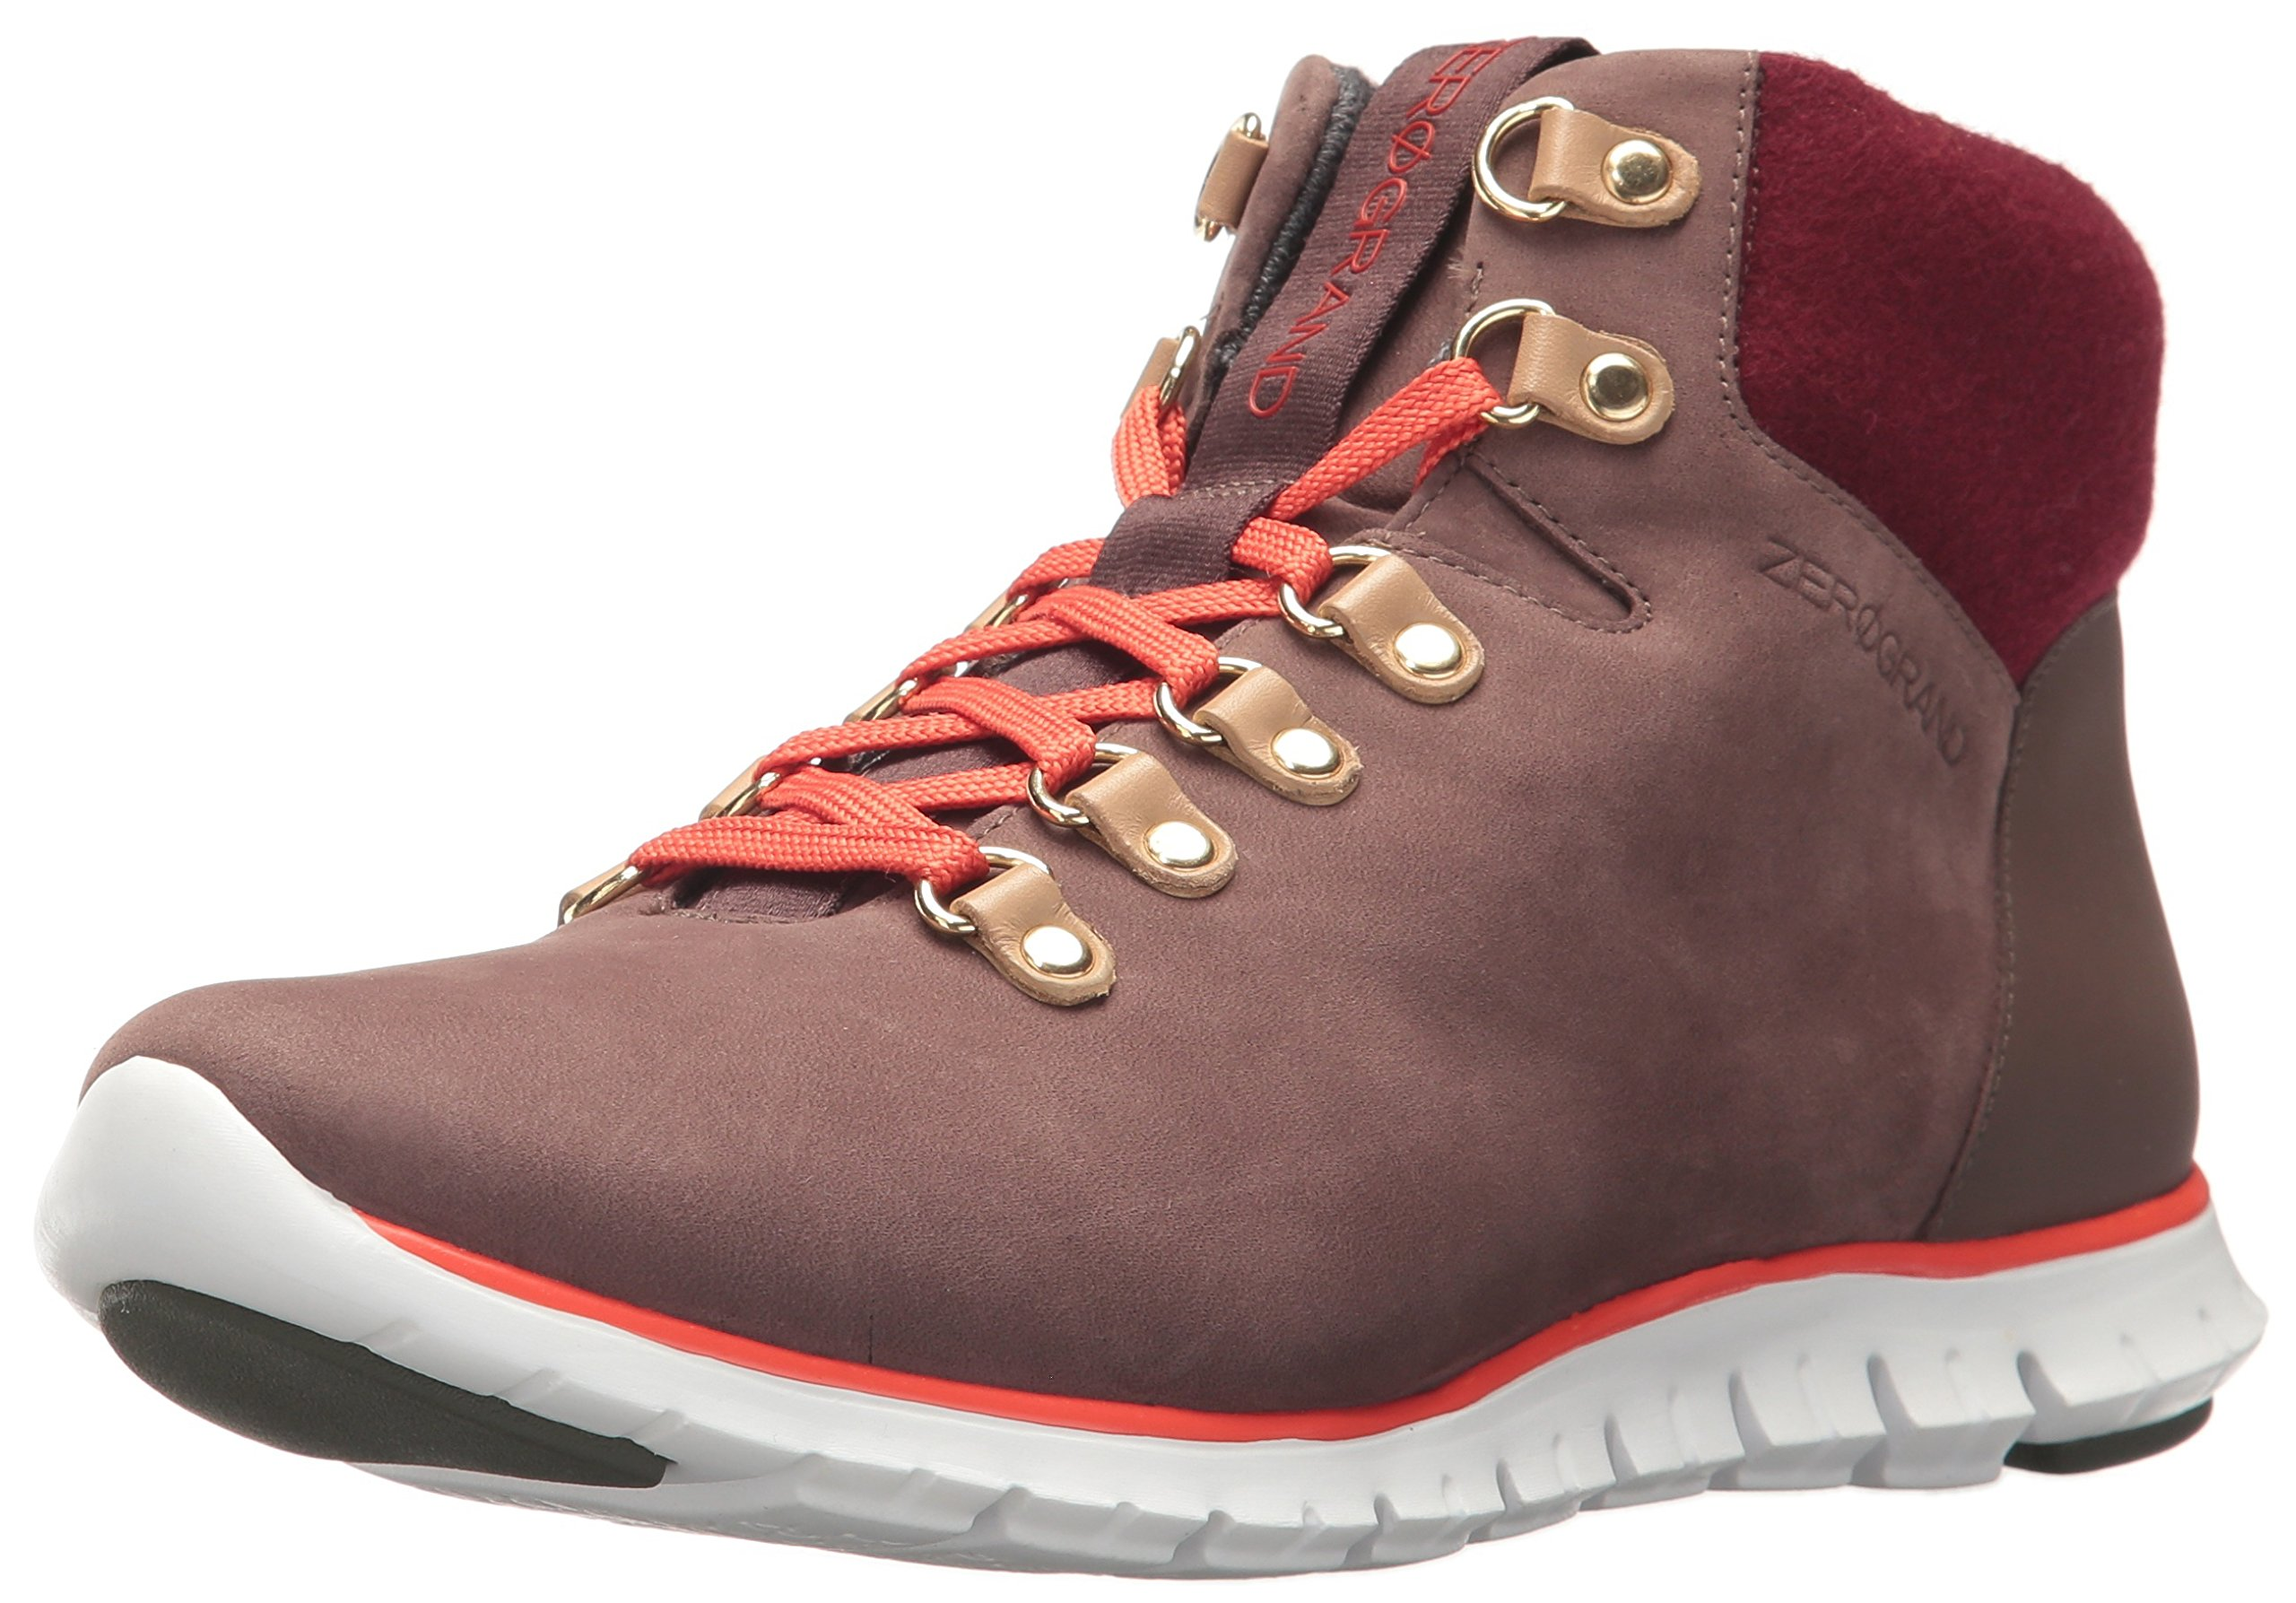 Cole Haan Women's Zerogrand Hikr Boot, Chestnut, 6 B US